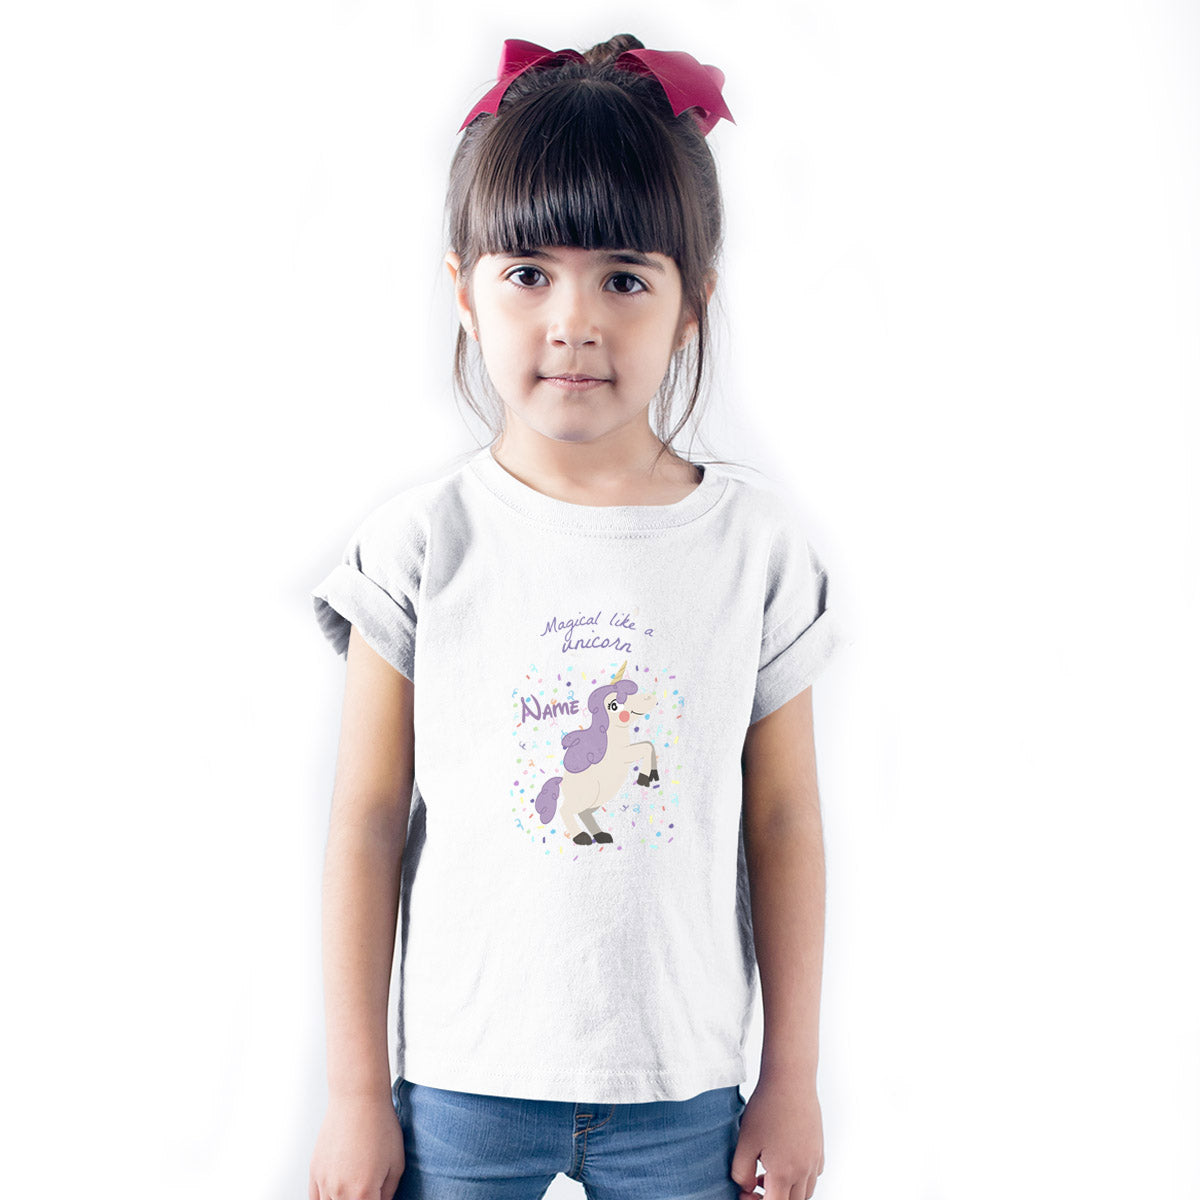 Sprinklecart Magical Like a Unicorn Printed Customized Poly-Cotton Kids T Shirt (White)